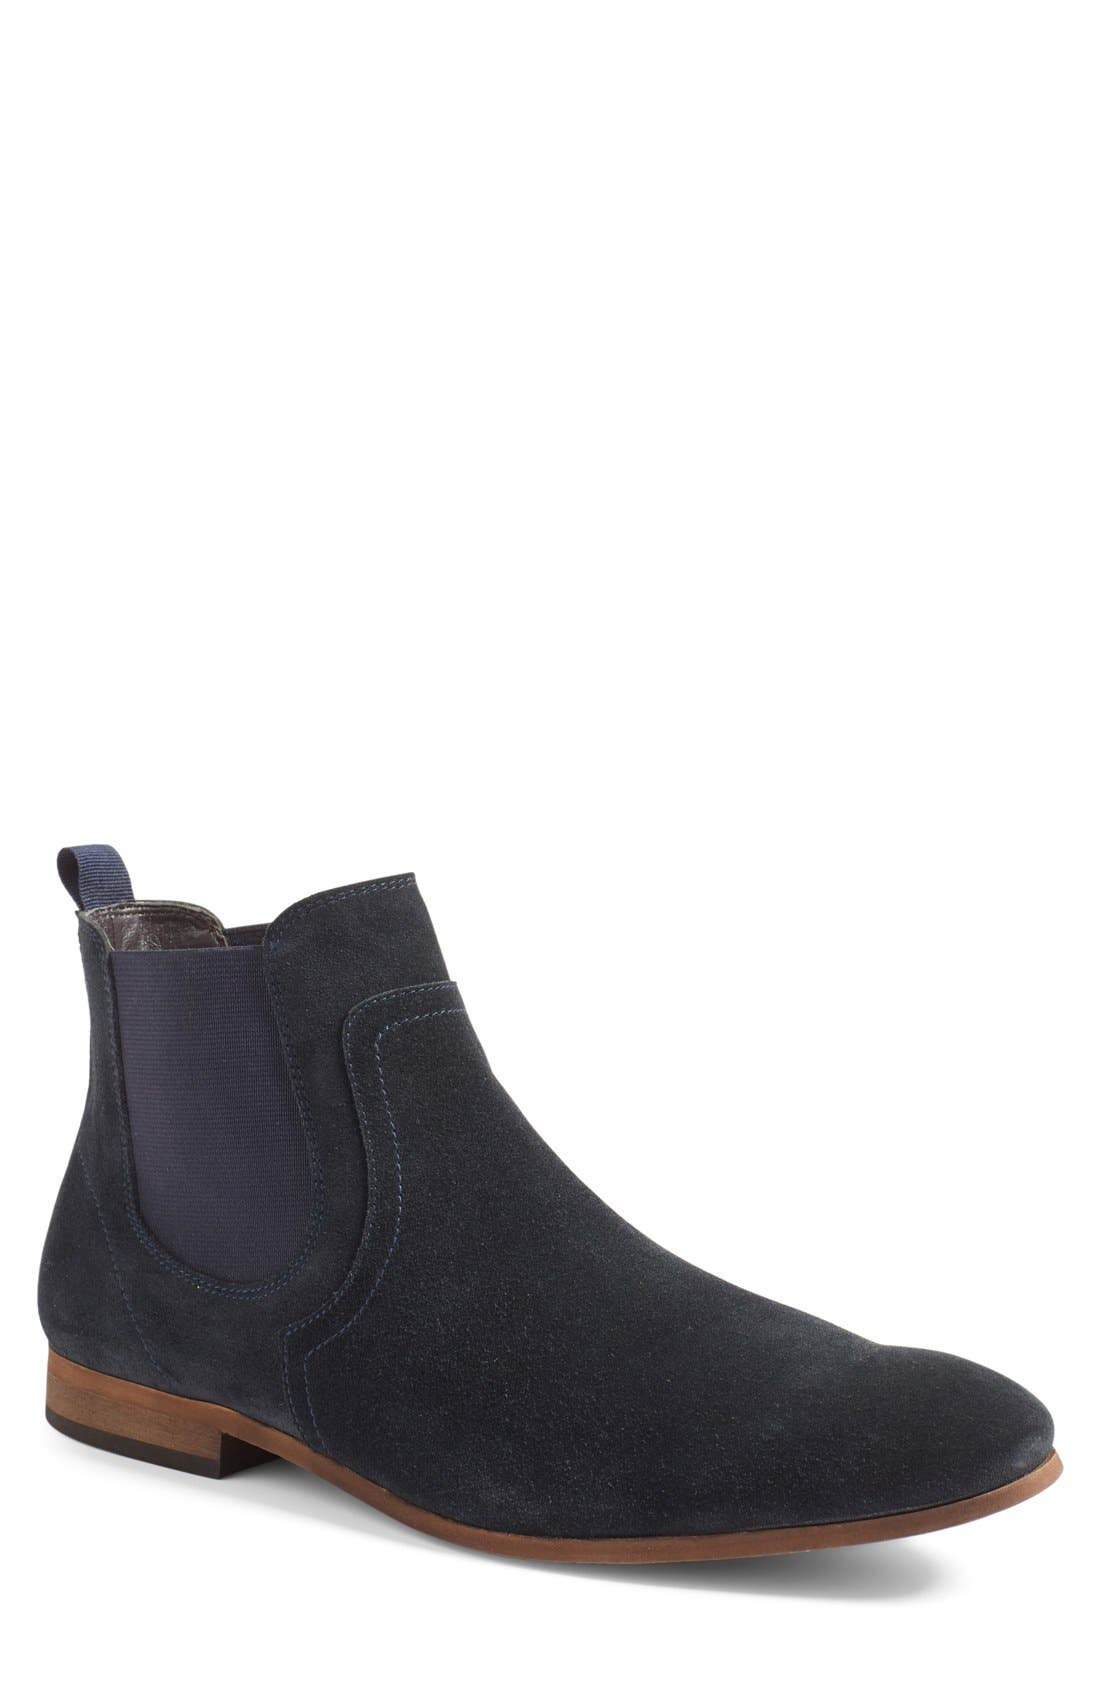 Brysen Chelsea Boot,                             Main thumbnail 9, color,